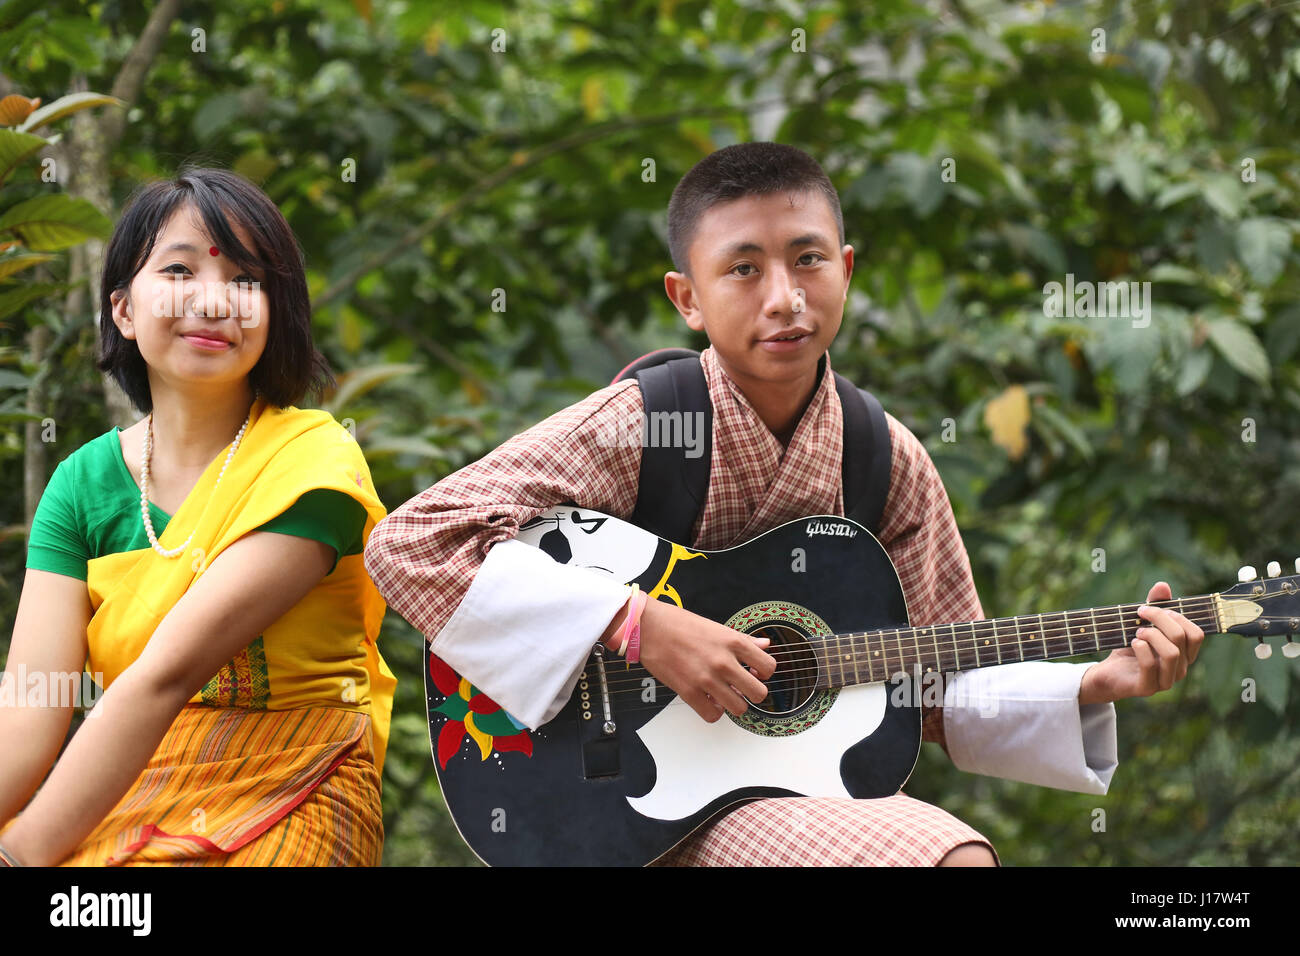 Bhutanese boy plying guitar and Bodo girl in traditional dress. Nganglam, Bhutan - Stock Image